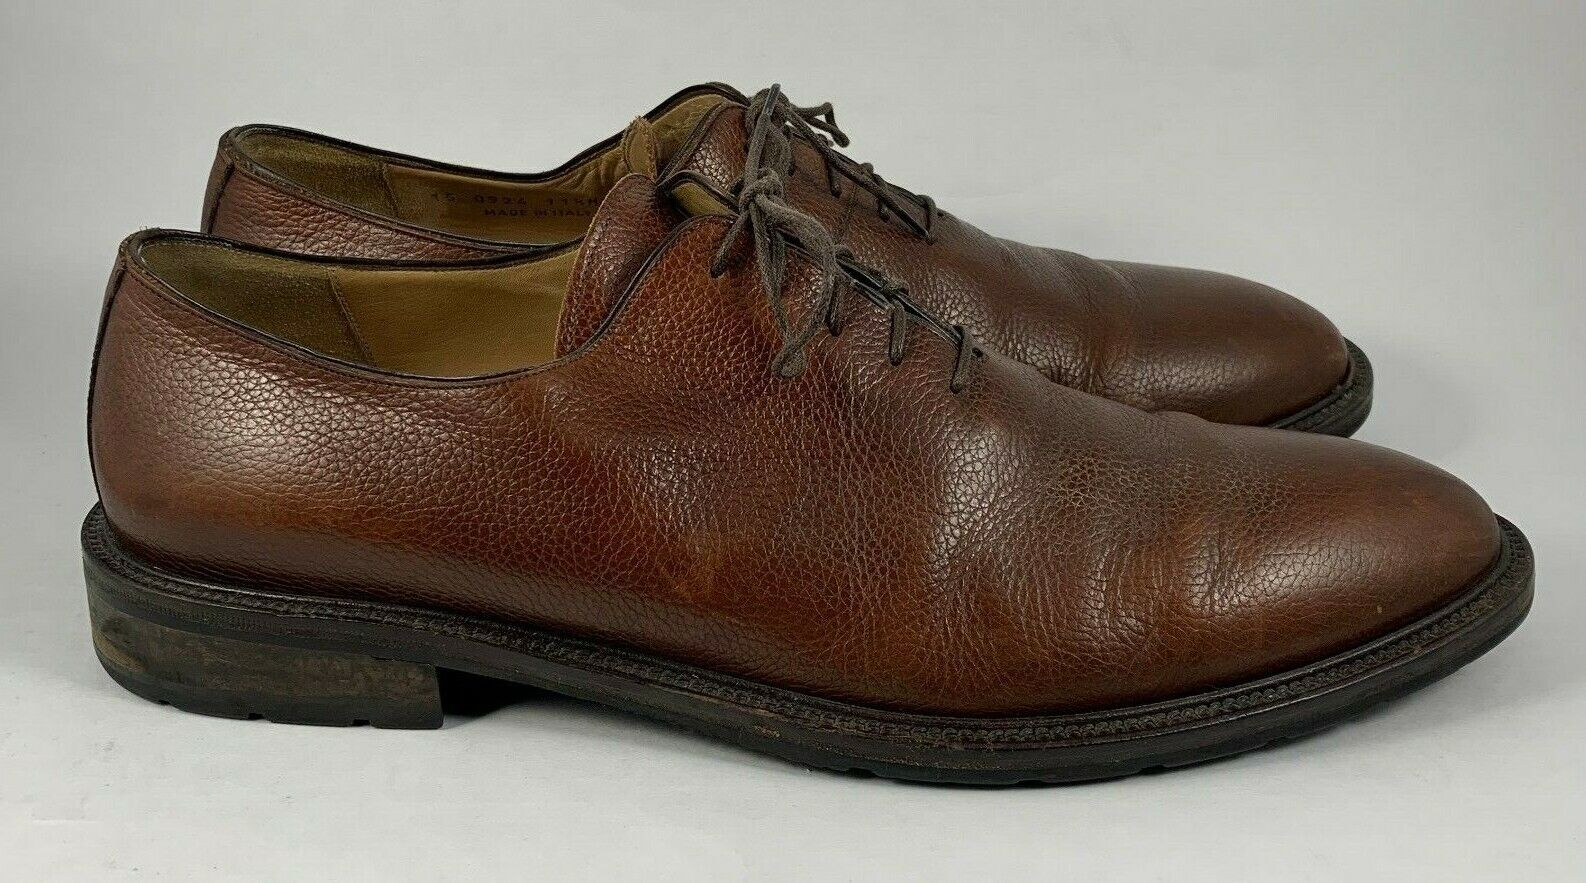 Men's Johnston & Murphy Italy Brown Pebbled Leather Oxford Shoes Size 11 1/2 M